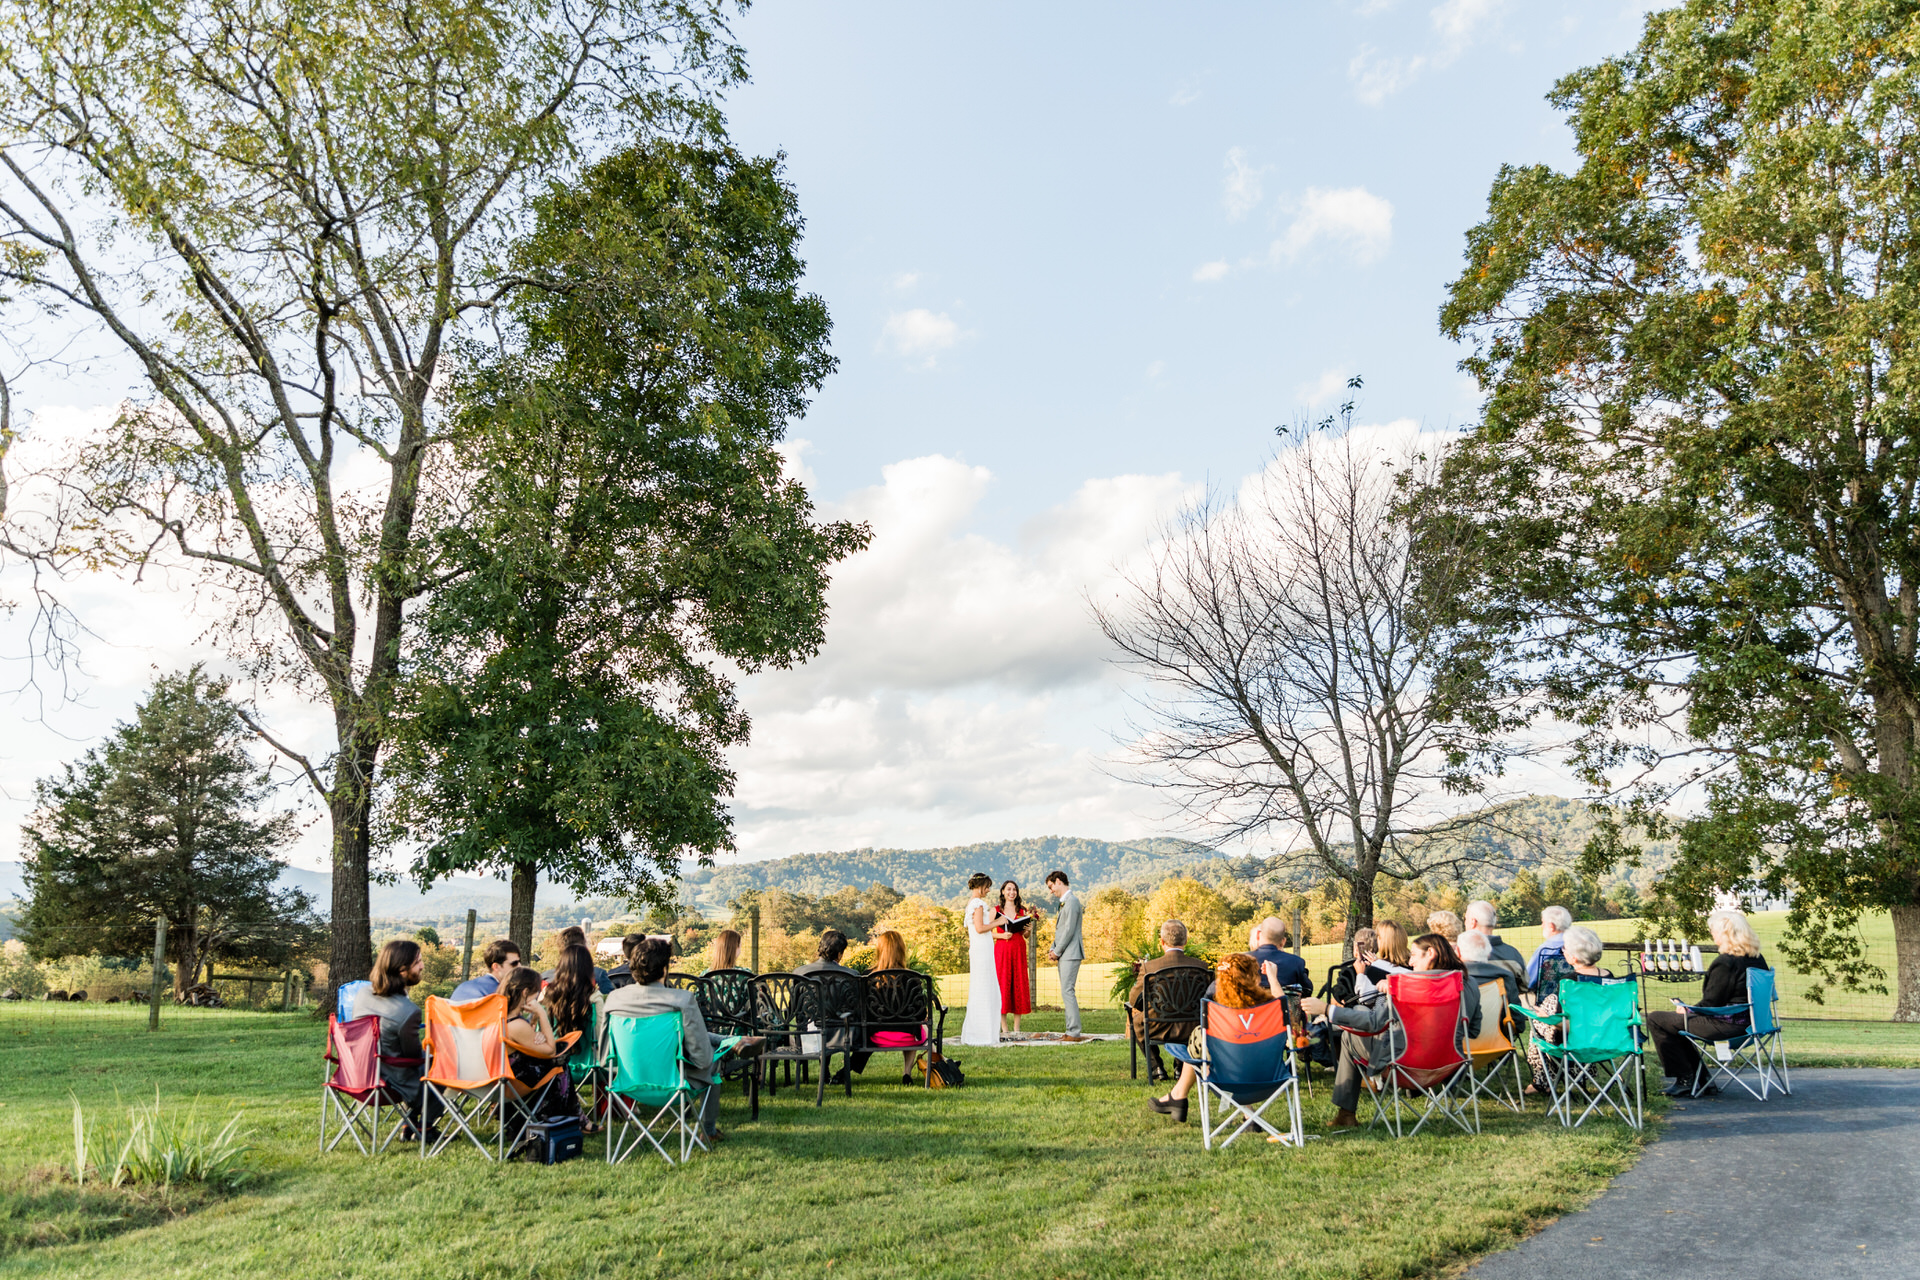 Photography for Charlottesville Virginia Weddings | They kept the ceremony very casual, with guests sitting in lawn chairs